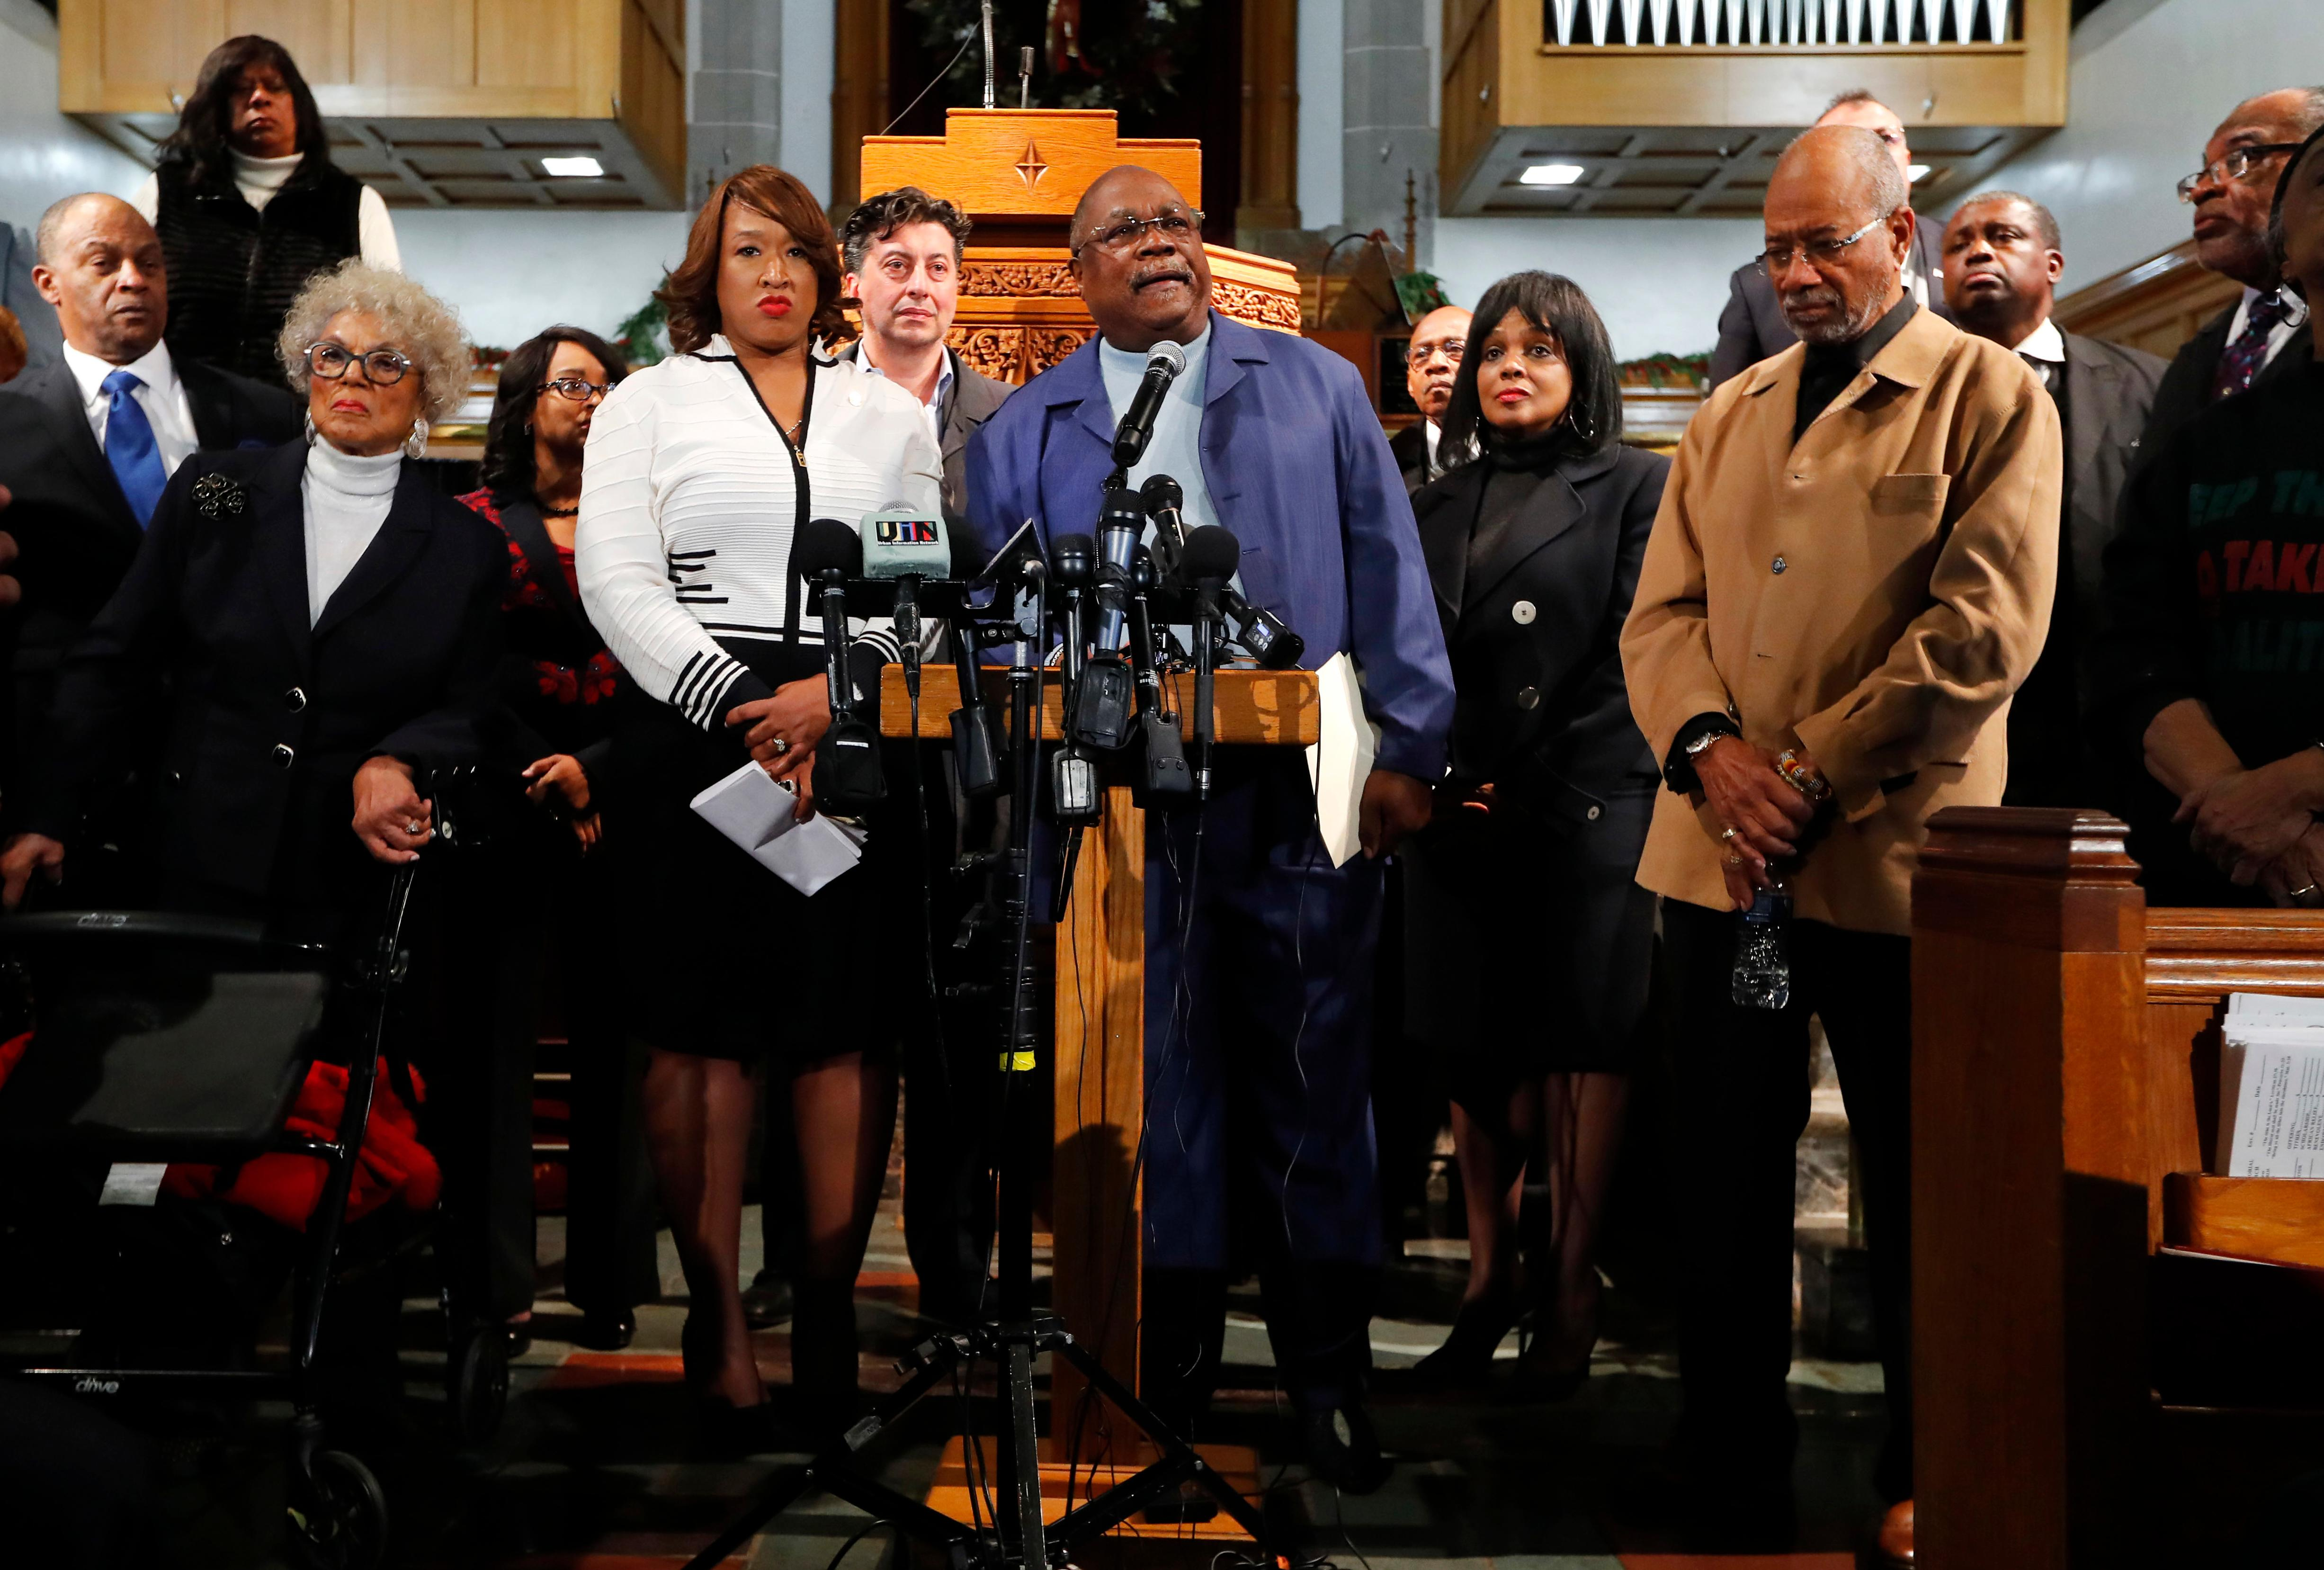 The Rev. Wendell Anthony, president of the Detroit Branch of the NAACP speaks at a rally in Detroit, Monday, Dec. 4, 2017. Clergy, Detroit elected leaders and community activists are calling for due process in support of U.S. Rep. John Conyers, D-Mich., who faces allegations of sexual harassment from several women who once worked for him. (AP Photo/Paul Sancya)